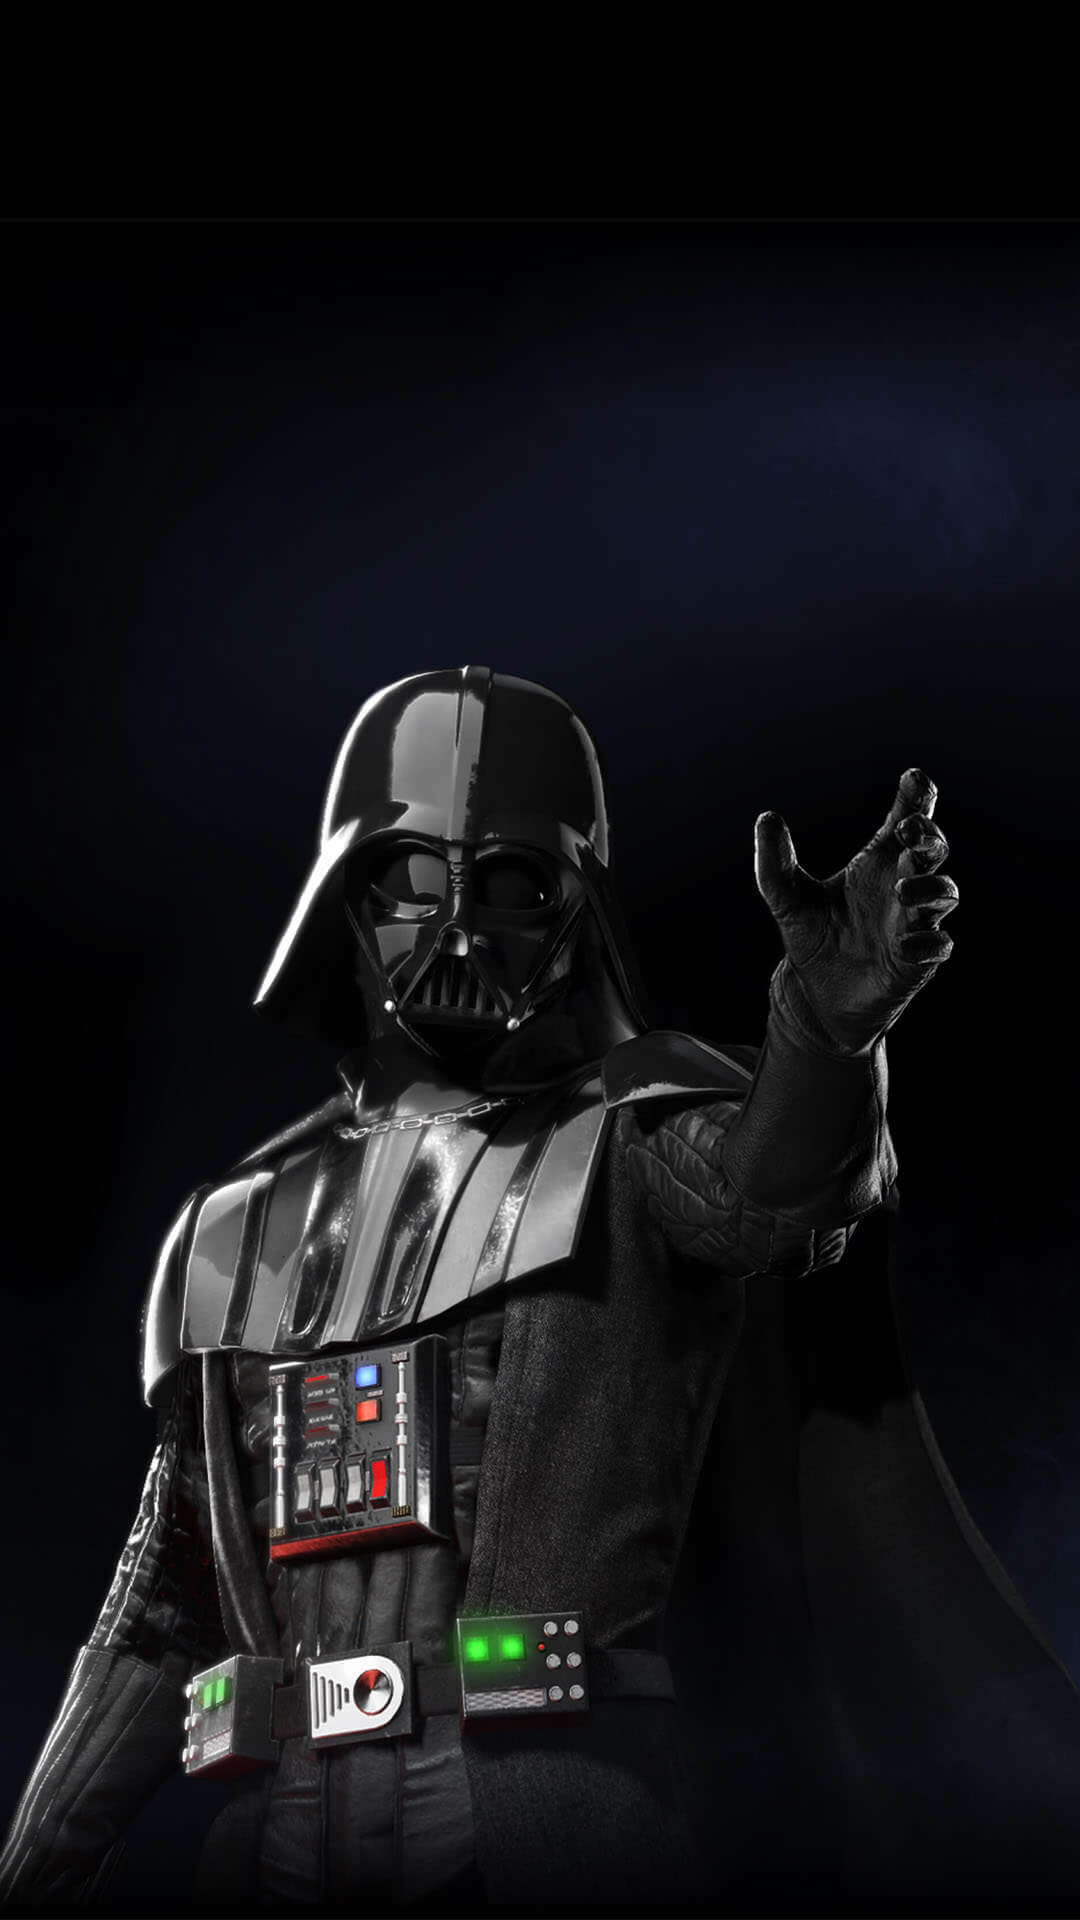 Darth Vader Iphone Wallpapers Top Free Darth Vader Iphone Backgrounds Wallpaperaccess